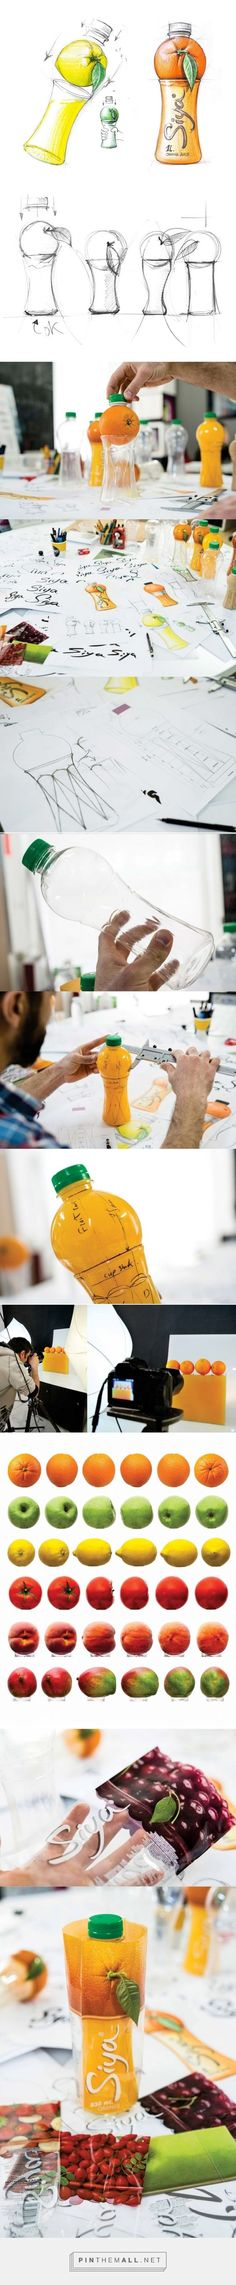 Siya Juice Packaging Development by Backbone Branding - http://www.packagingoftheworld.com/2016/04/siya.html: